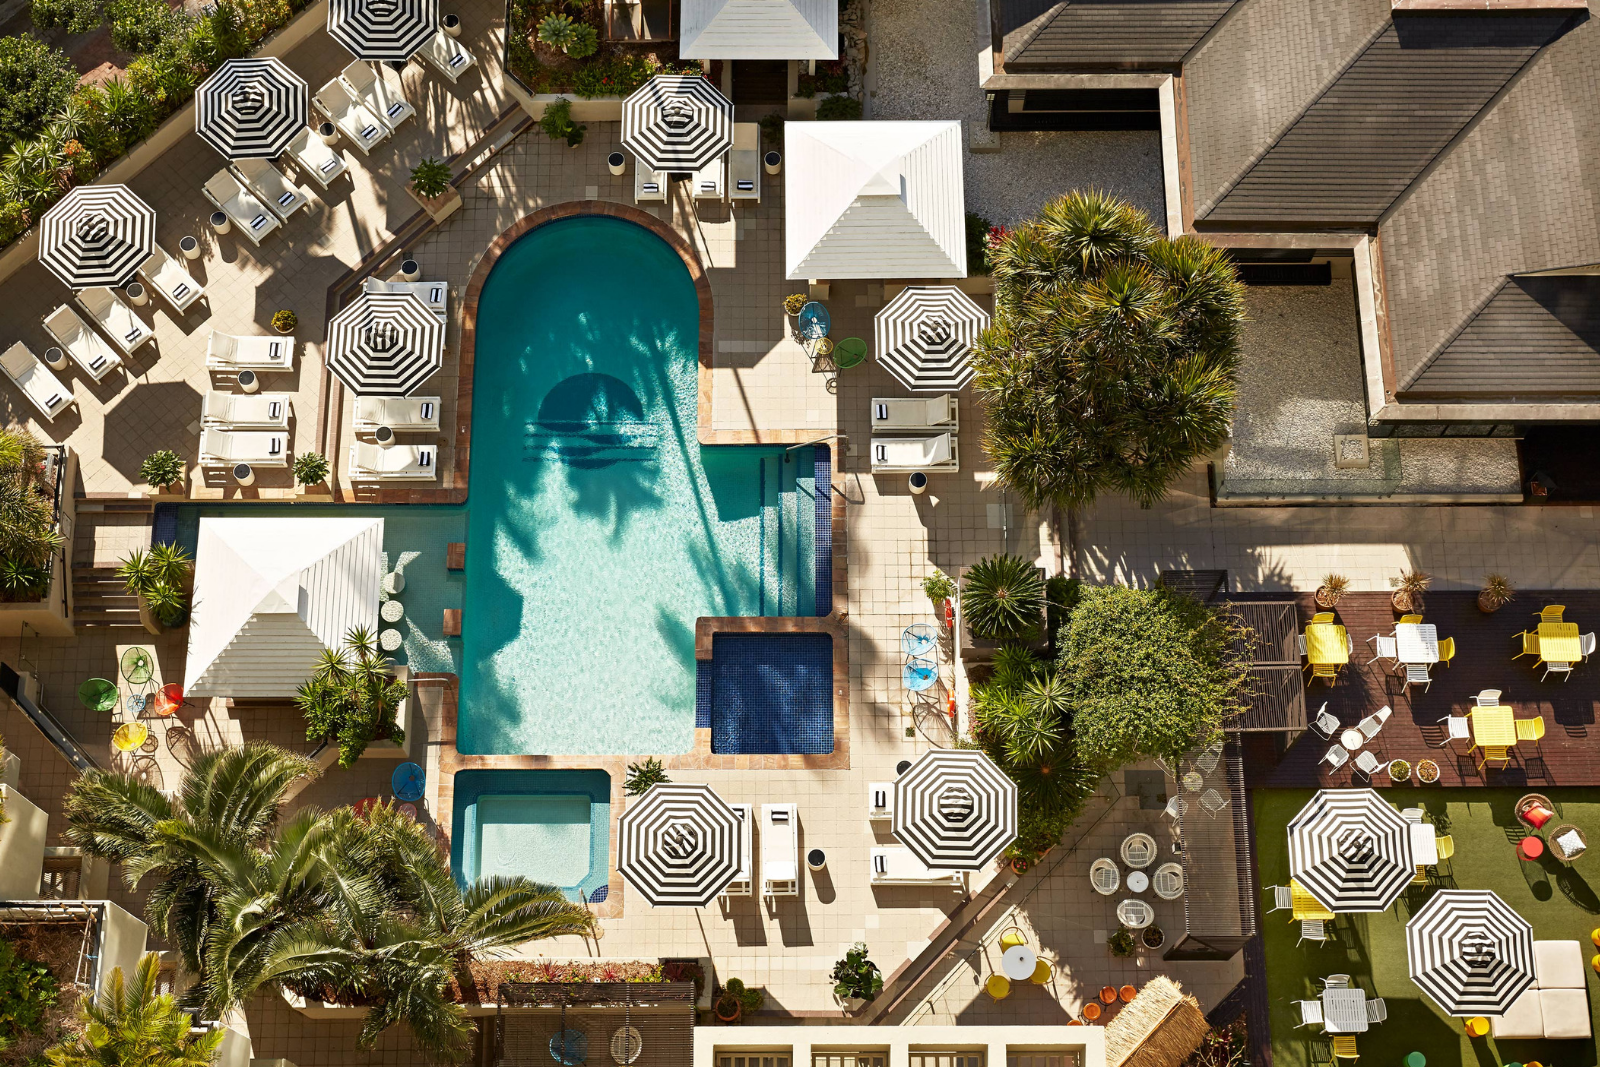 QT HOTEL: YOUR WEEKEND GUIDE